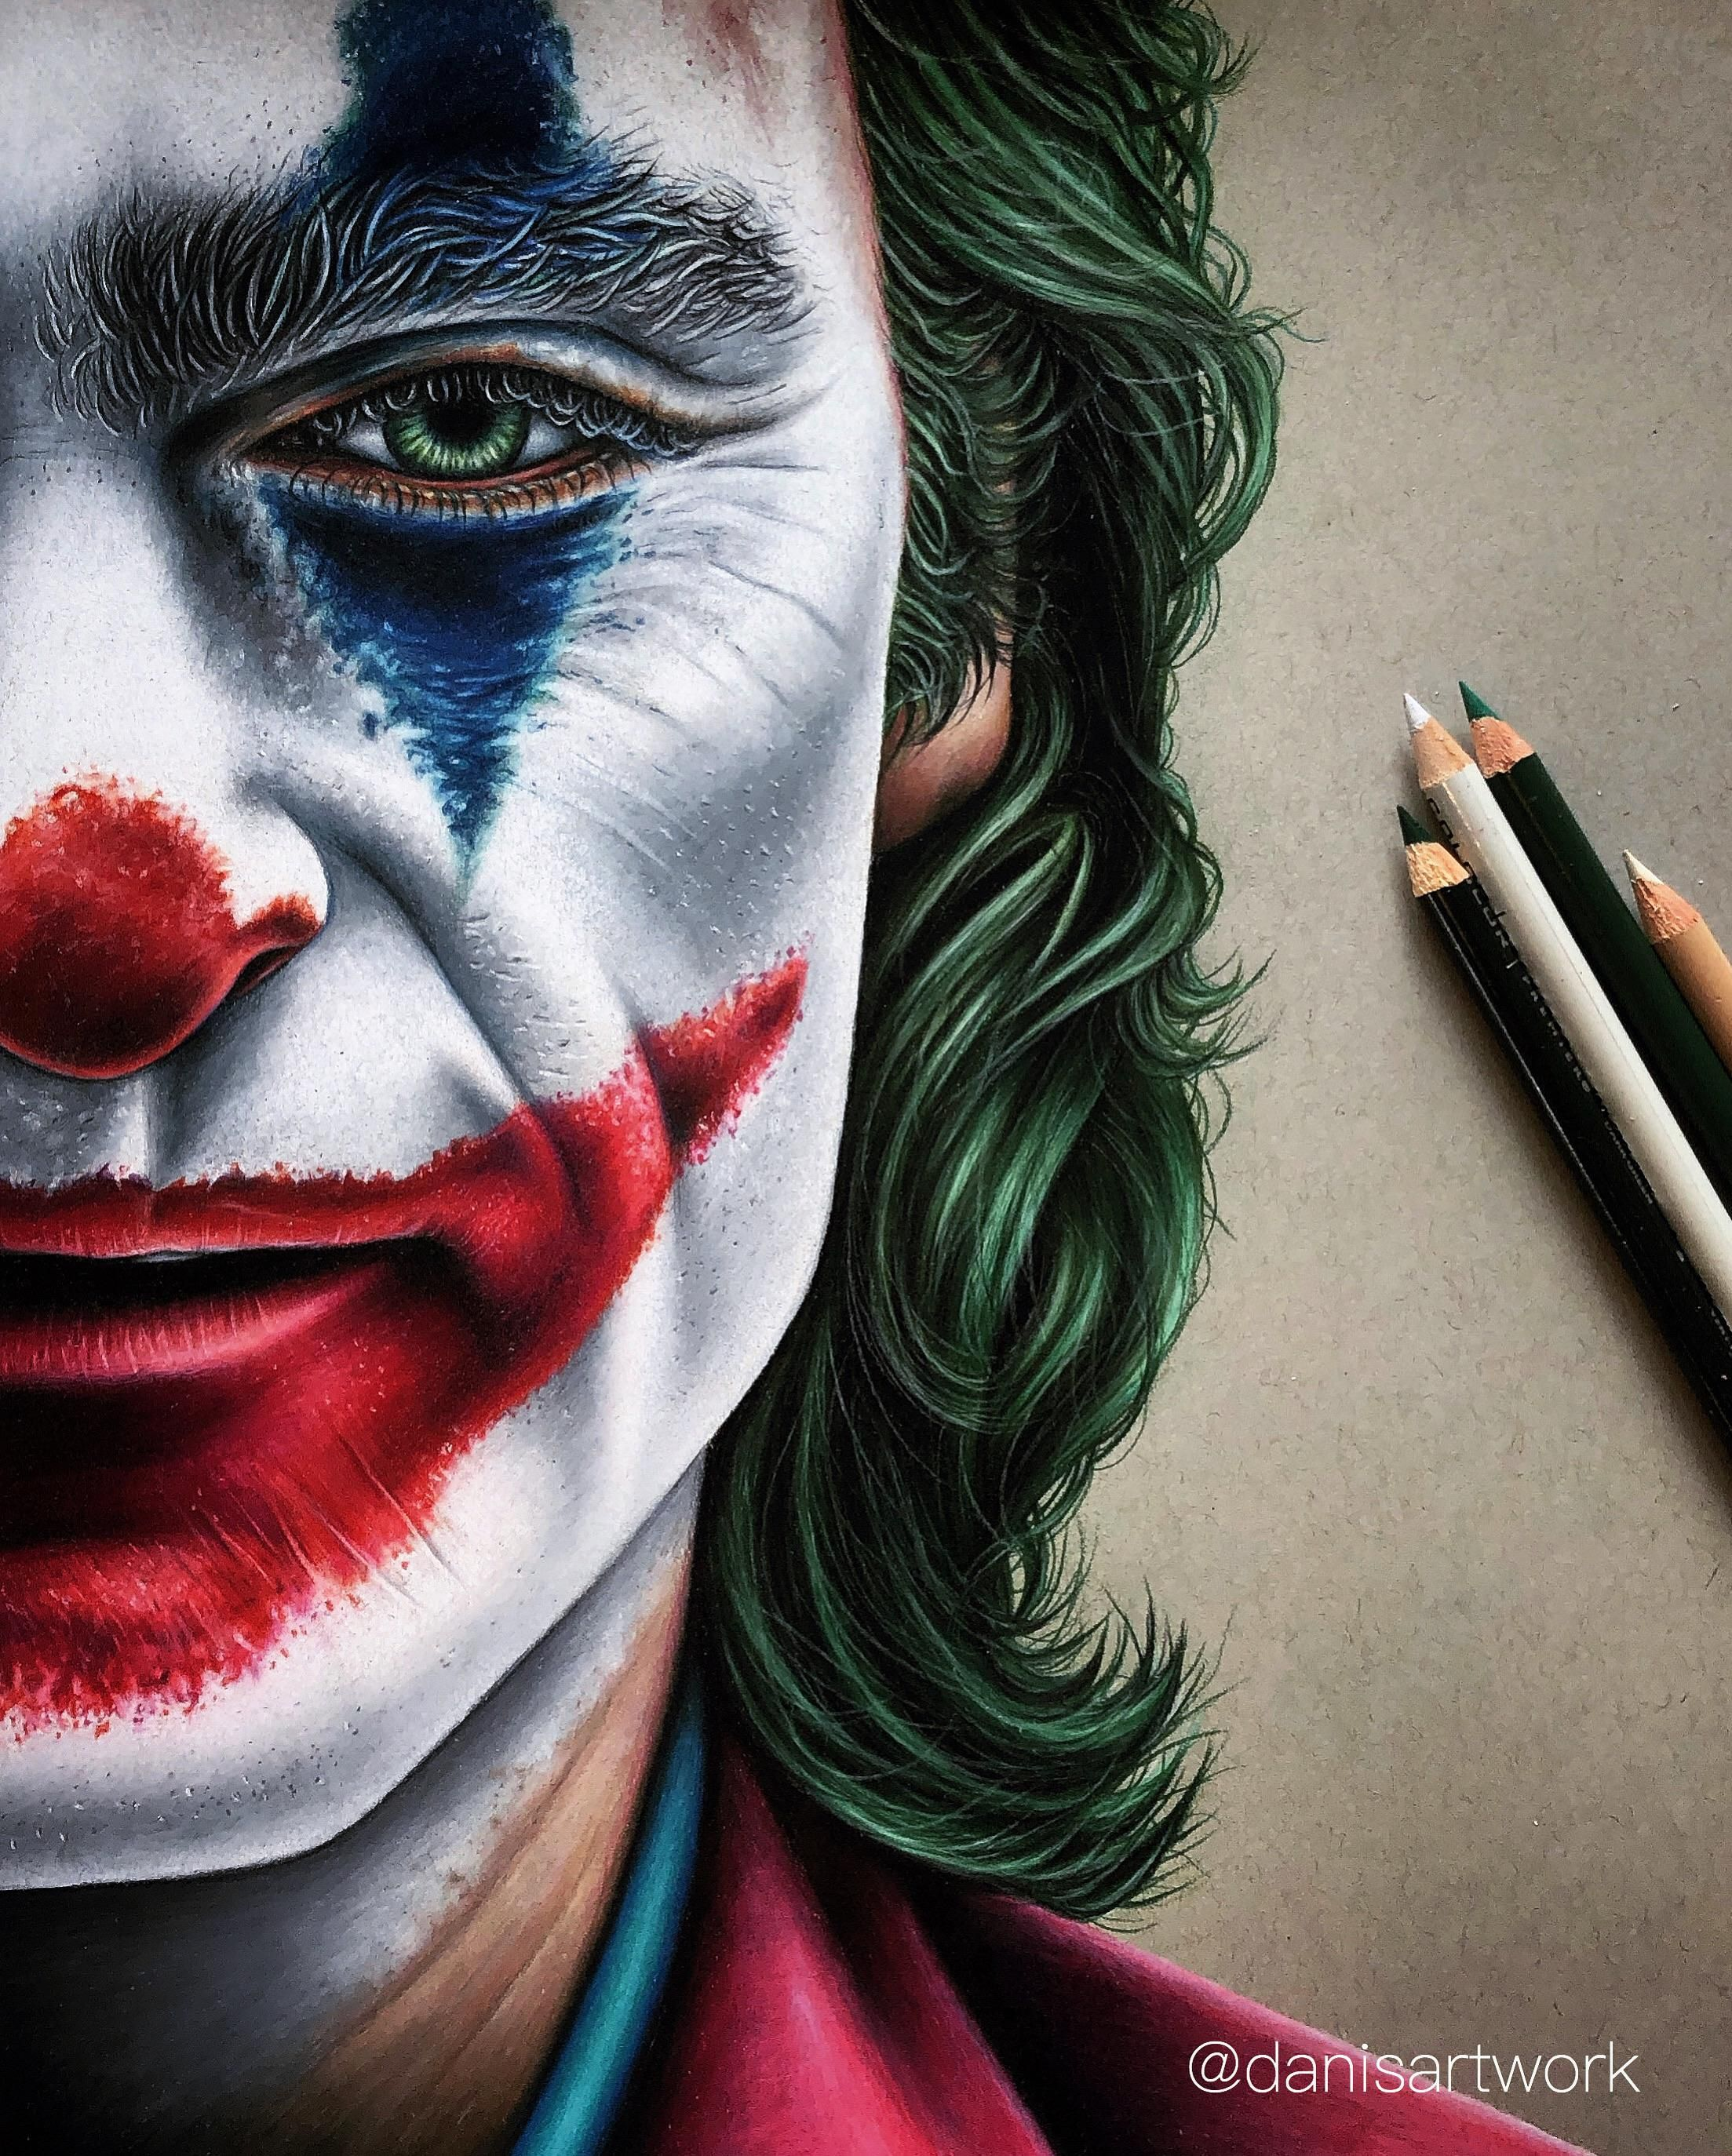 Really Proud Of My Finished Coloured Pencil Drawing Of The Joker Latest Pictures Https Ift Tt 2p3yjmz Joker Art Drawing Color Pencil Sketch Joker Drawings